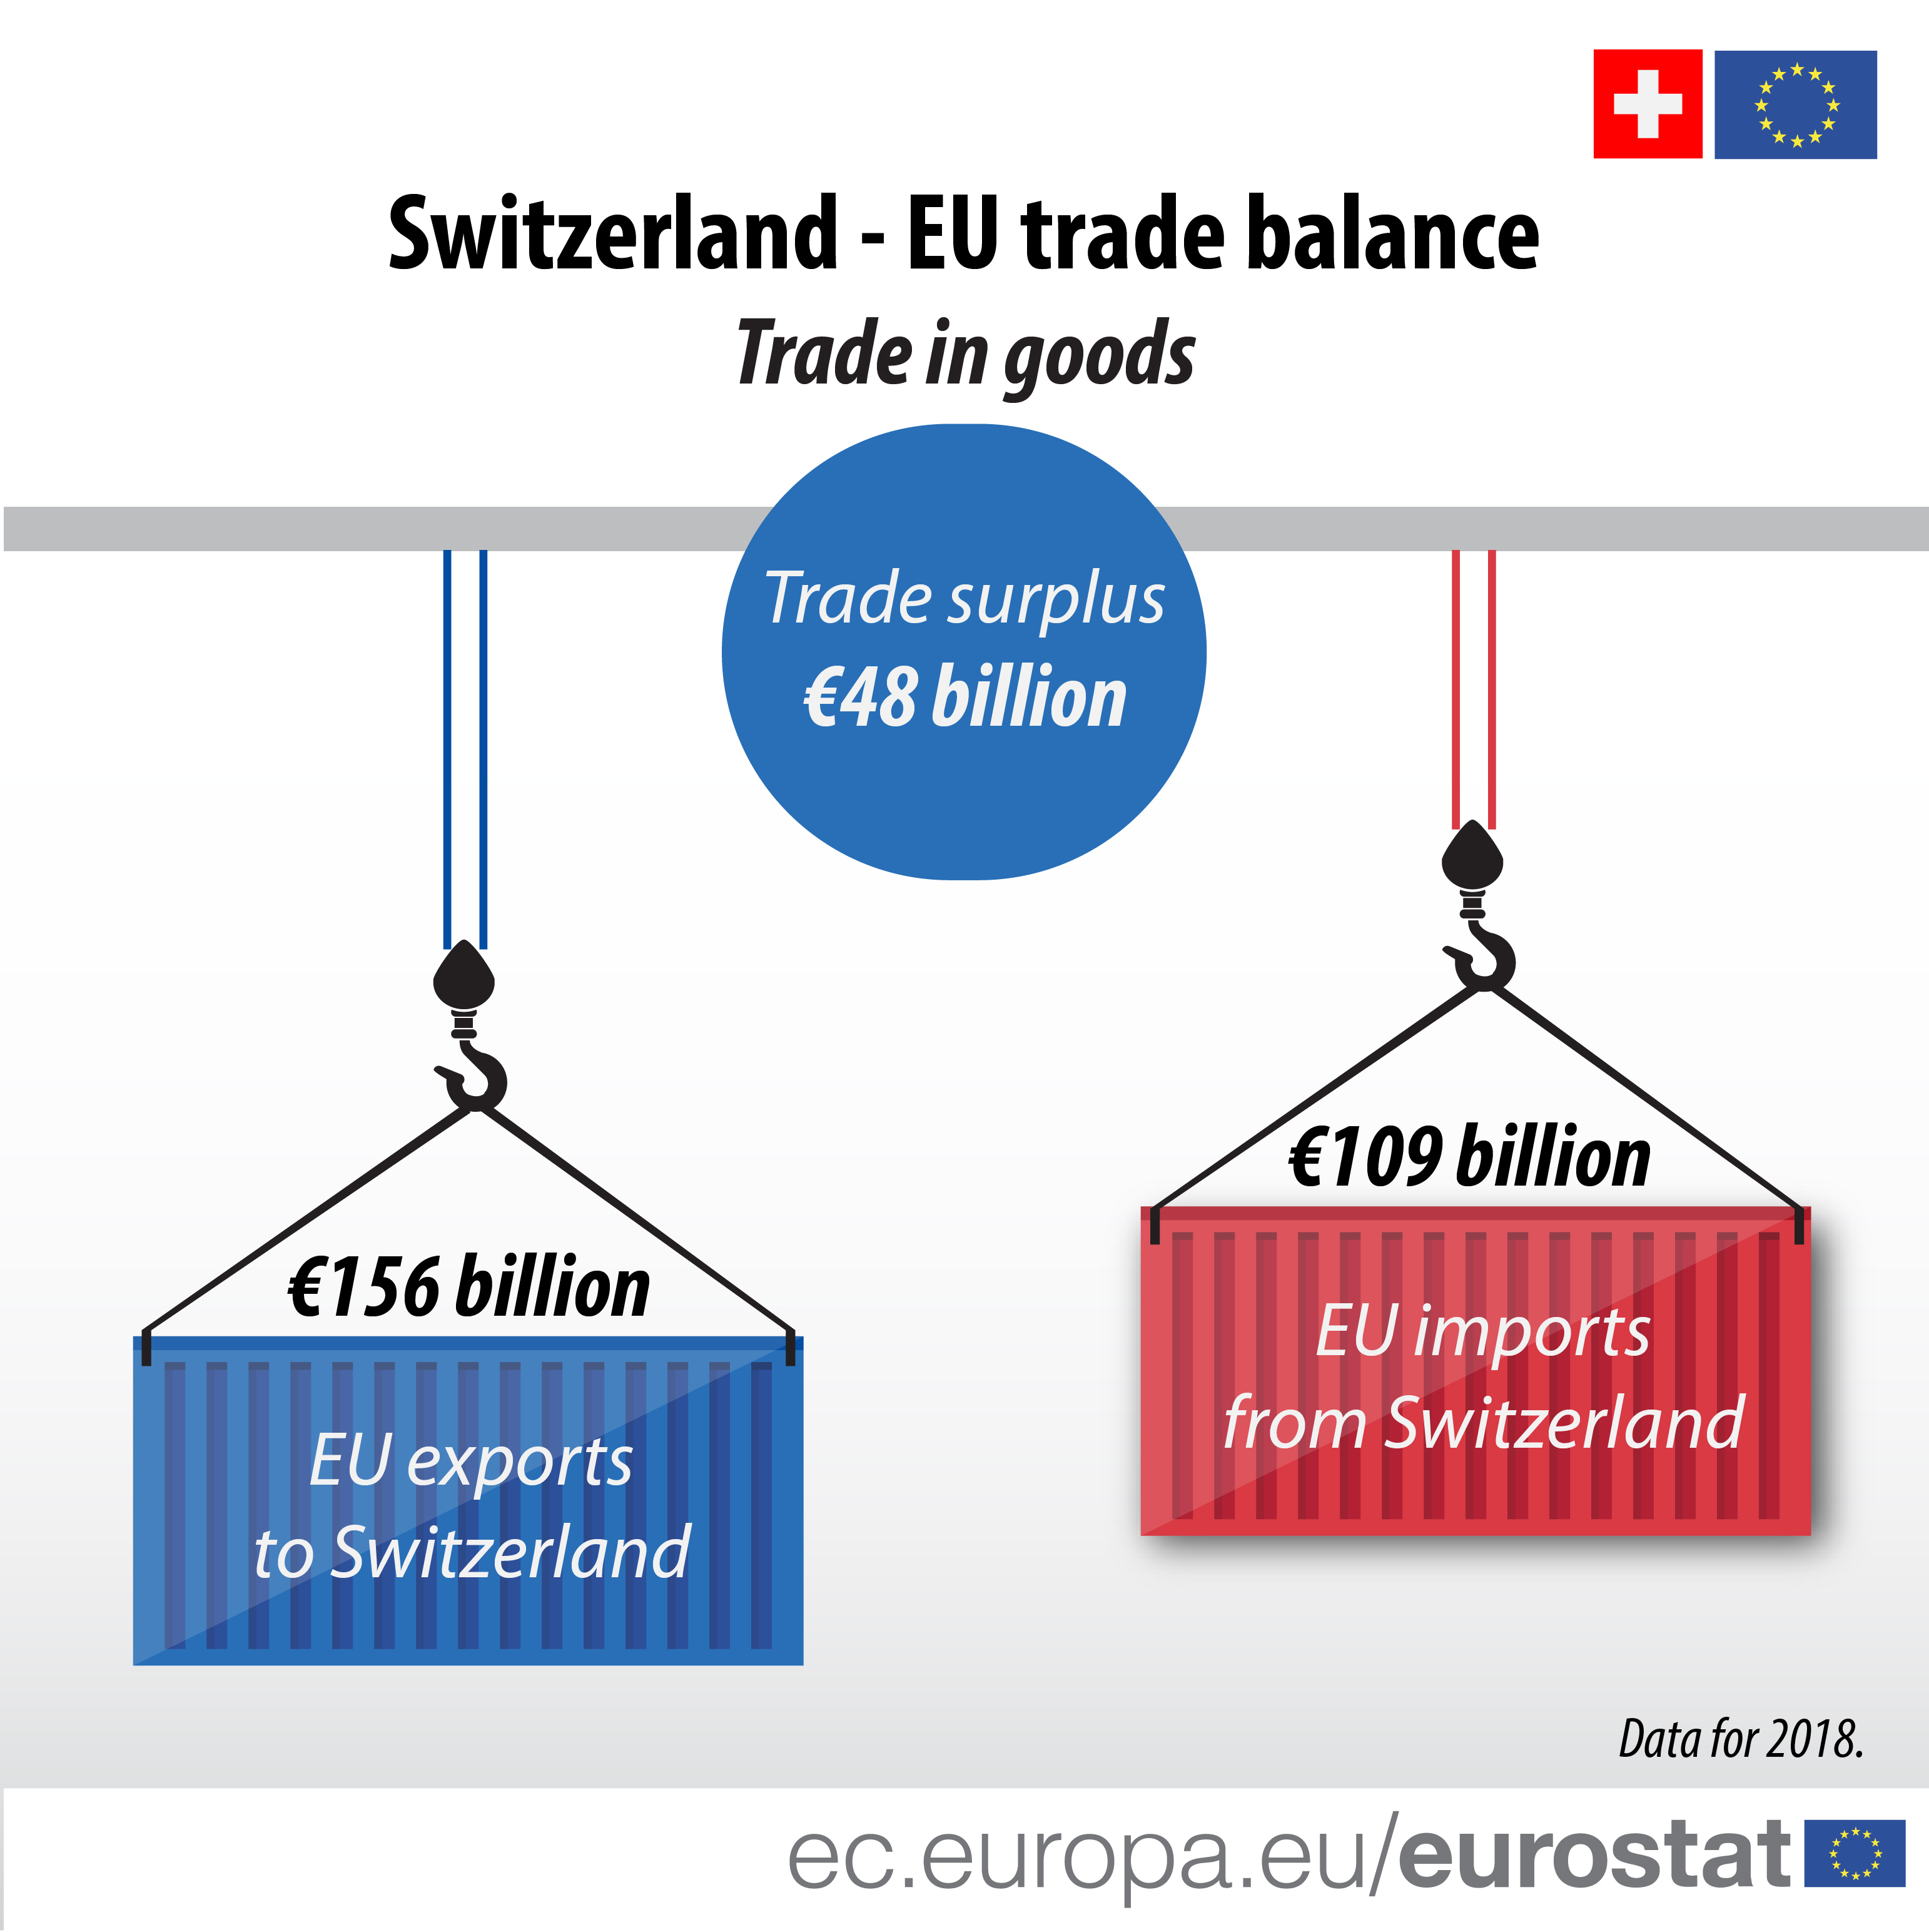 Infographic illustrating the trade balance between Switzerland and the EU in 2018